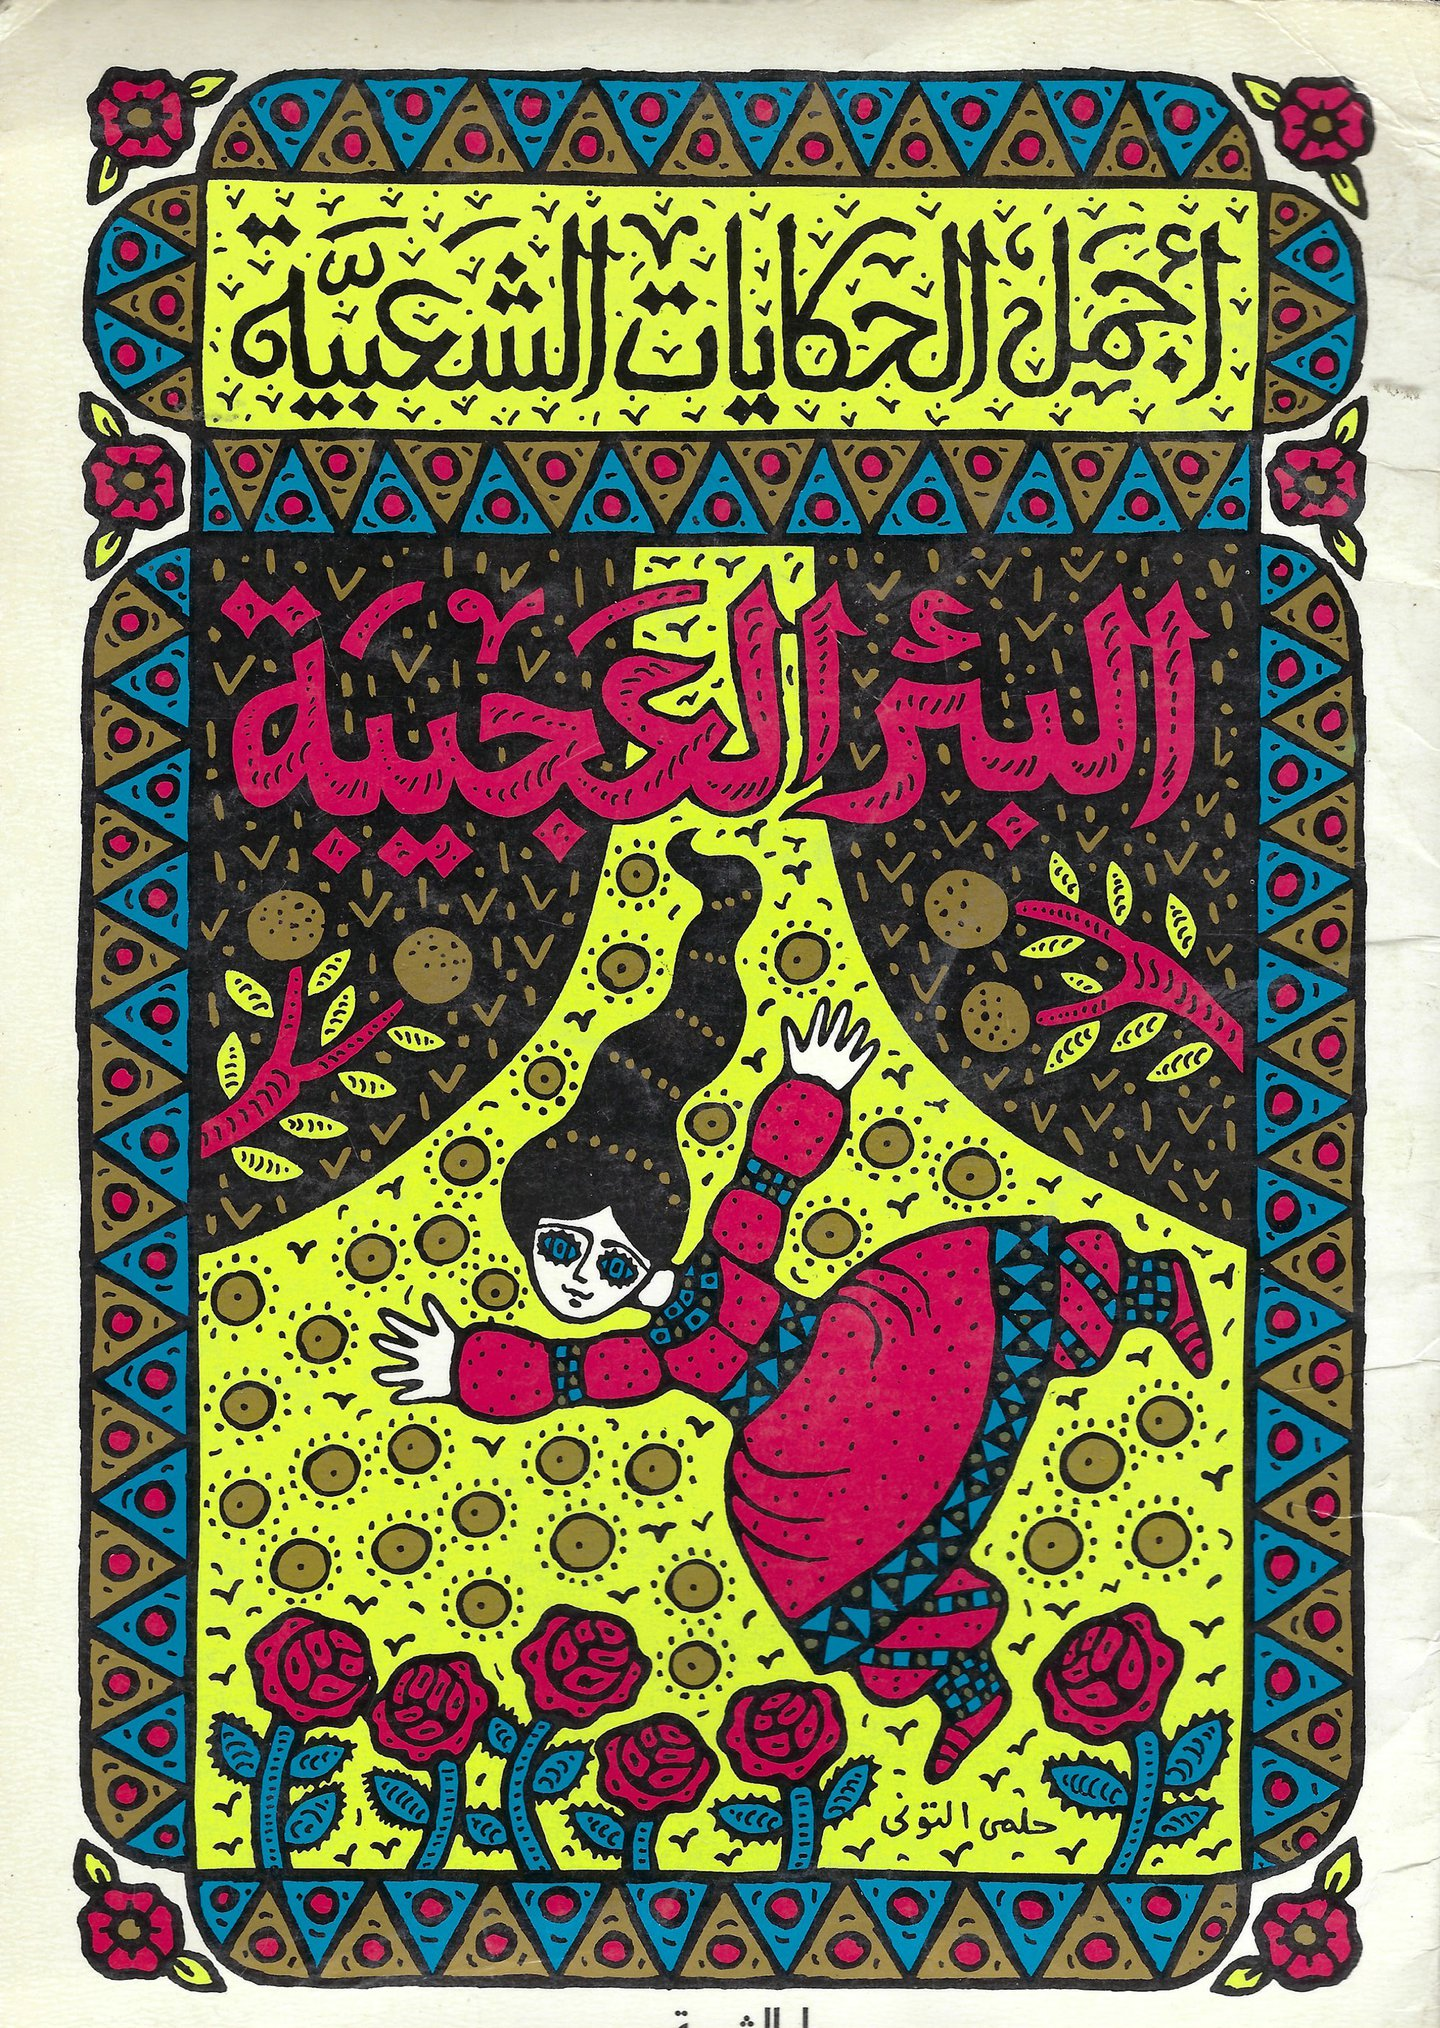 We dive into a new archive of over 1,000 book covers from the Arab world